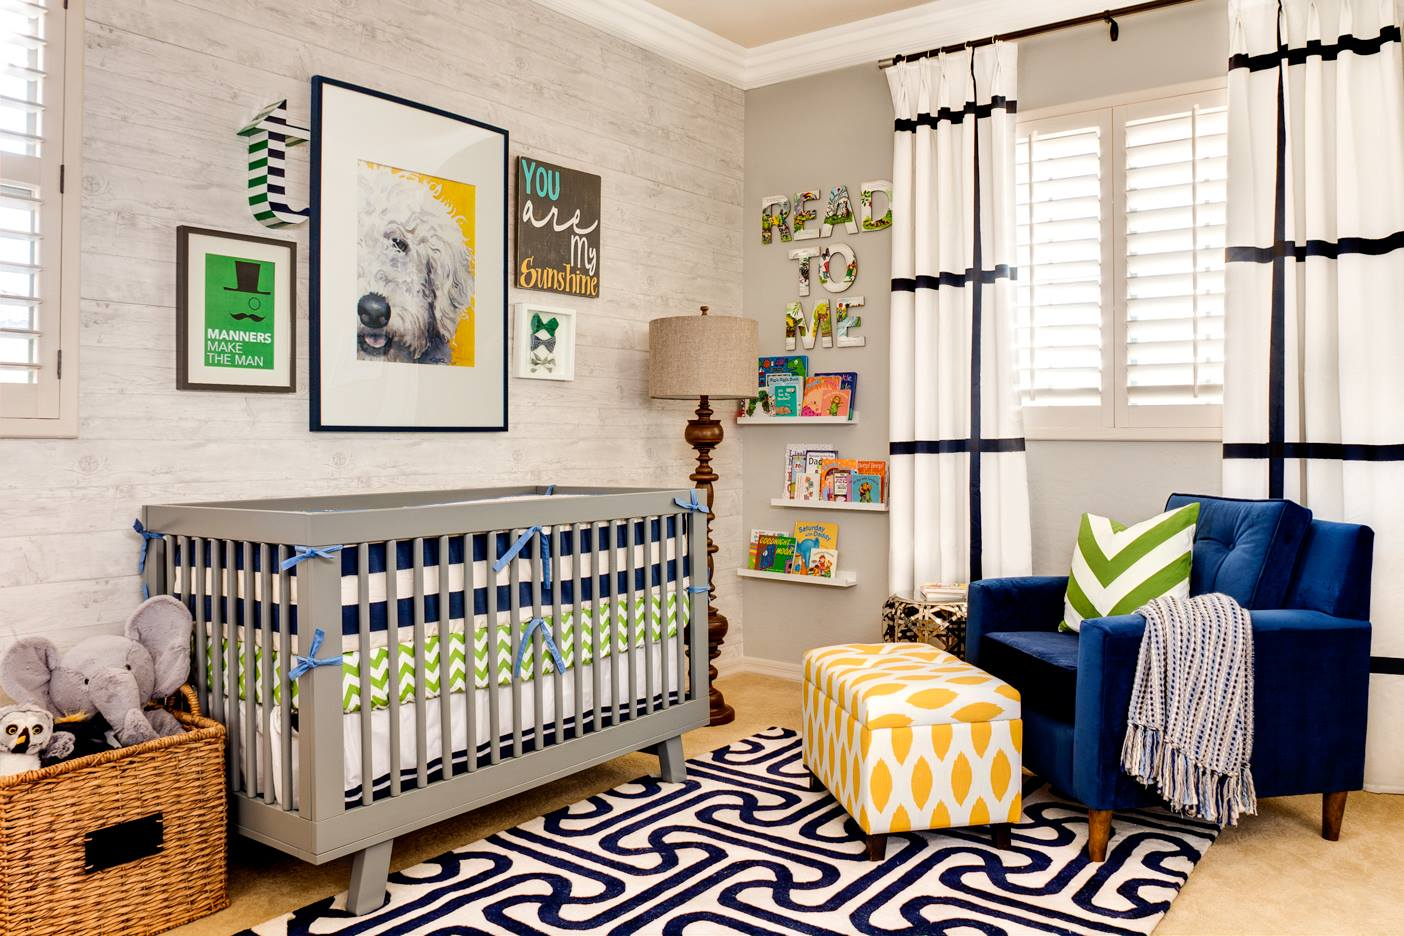 Great Modern Nursery with Gallery Wall Above Crib